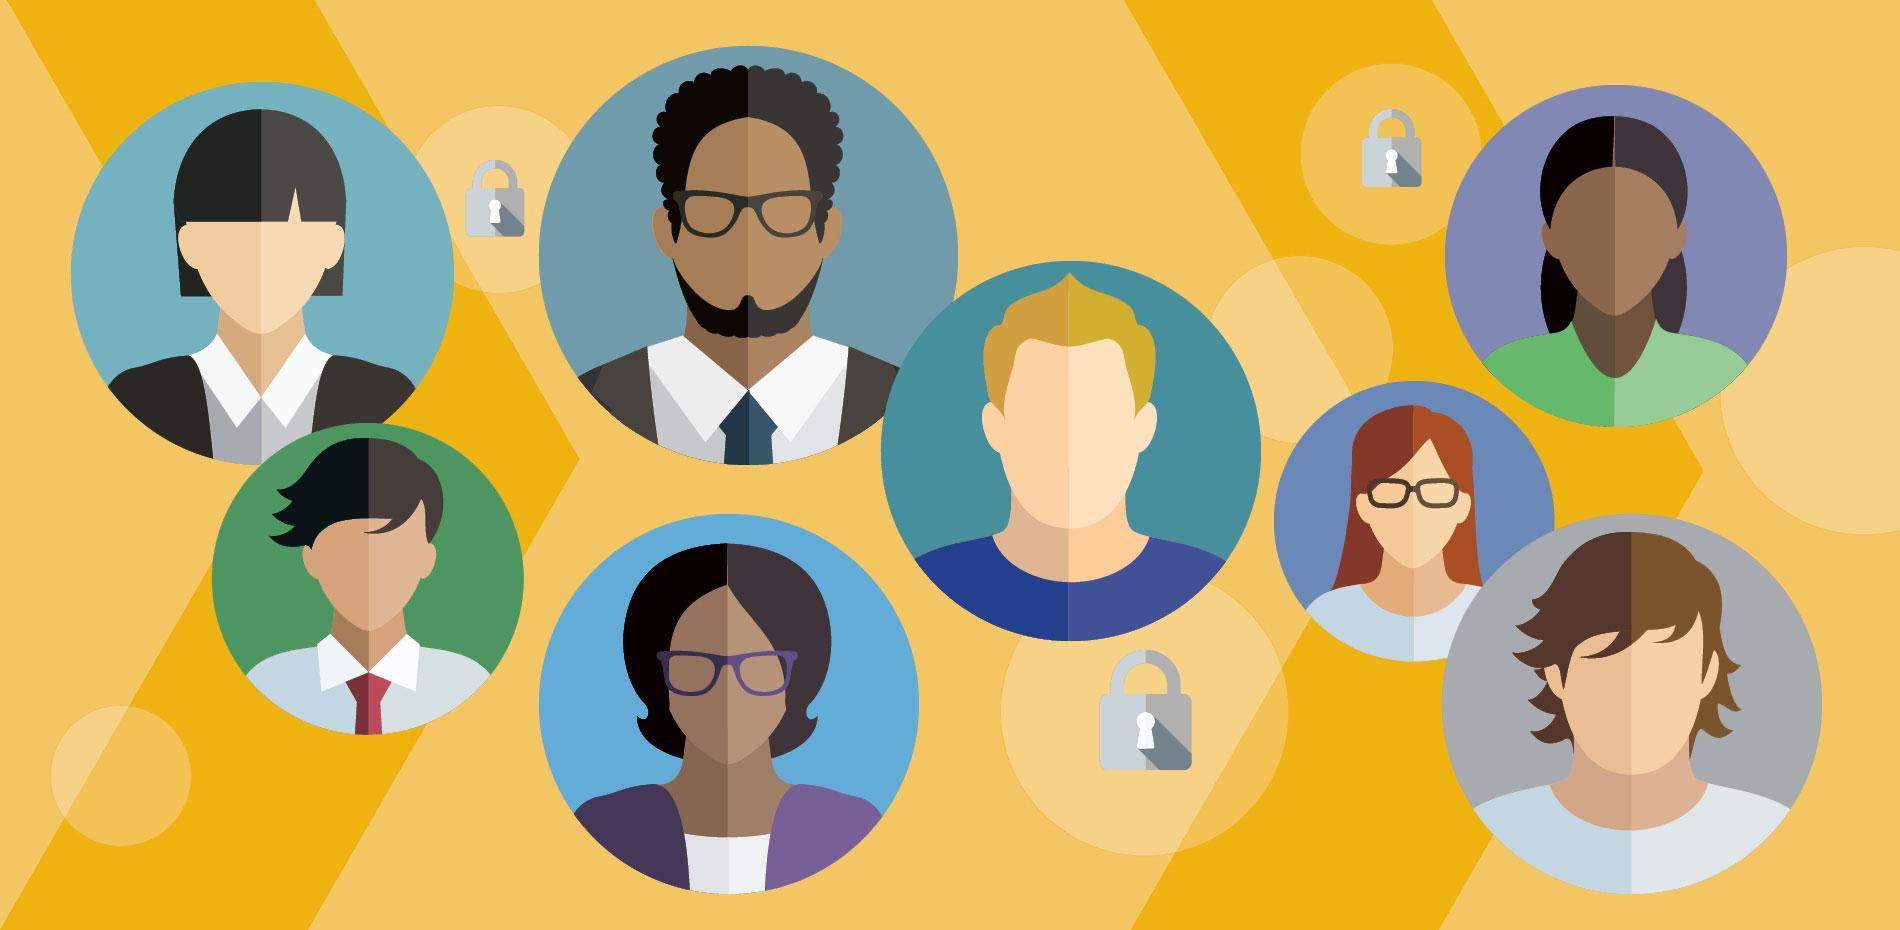 Diverse group of professionals against a yellow chevron background surrounded by security locks.